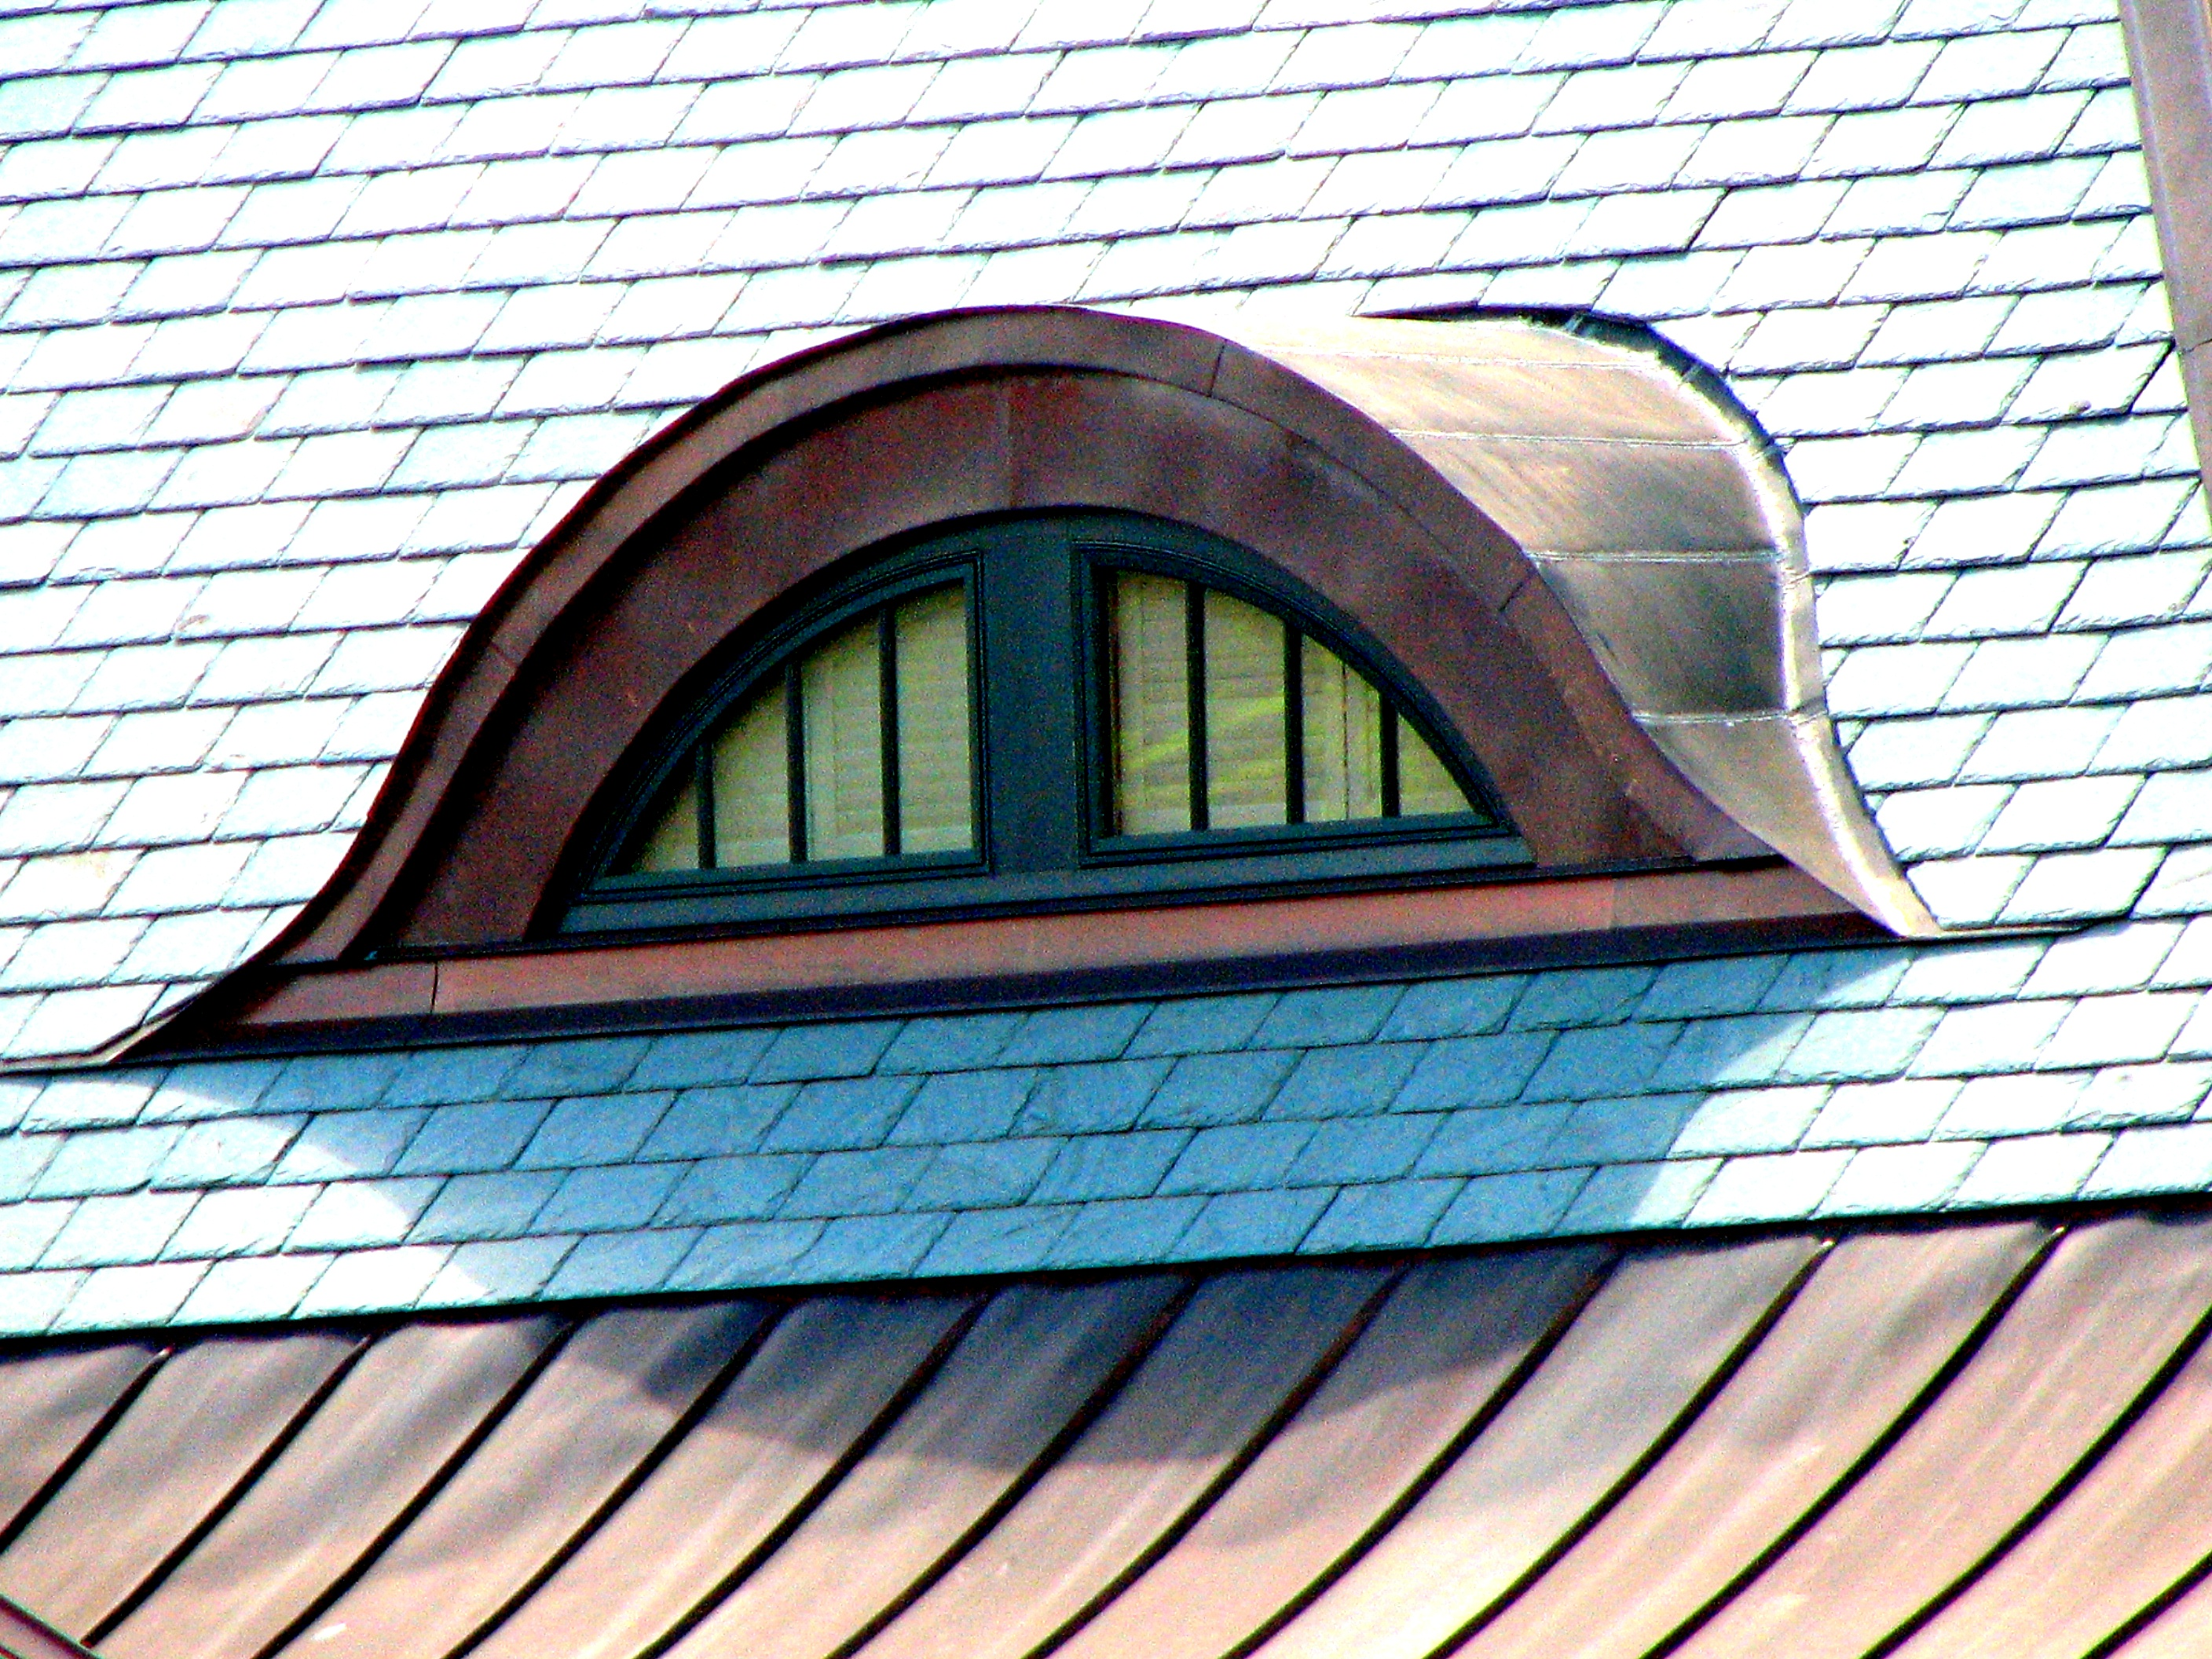 Eyebrow dormer flickr photo sharing for Eyebrow dormer windows